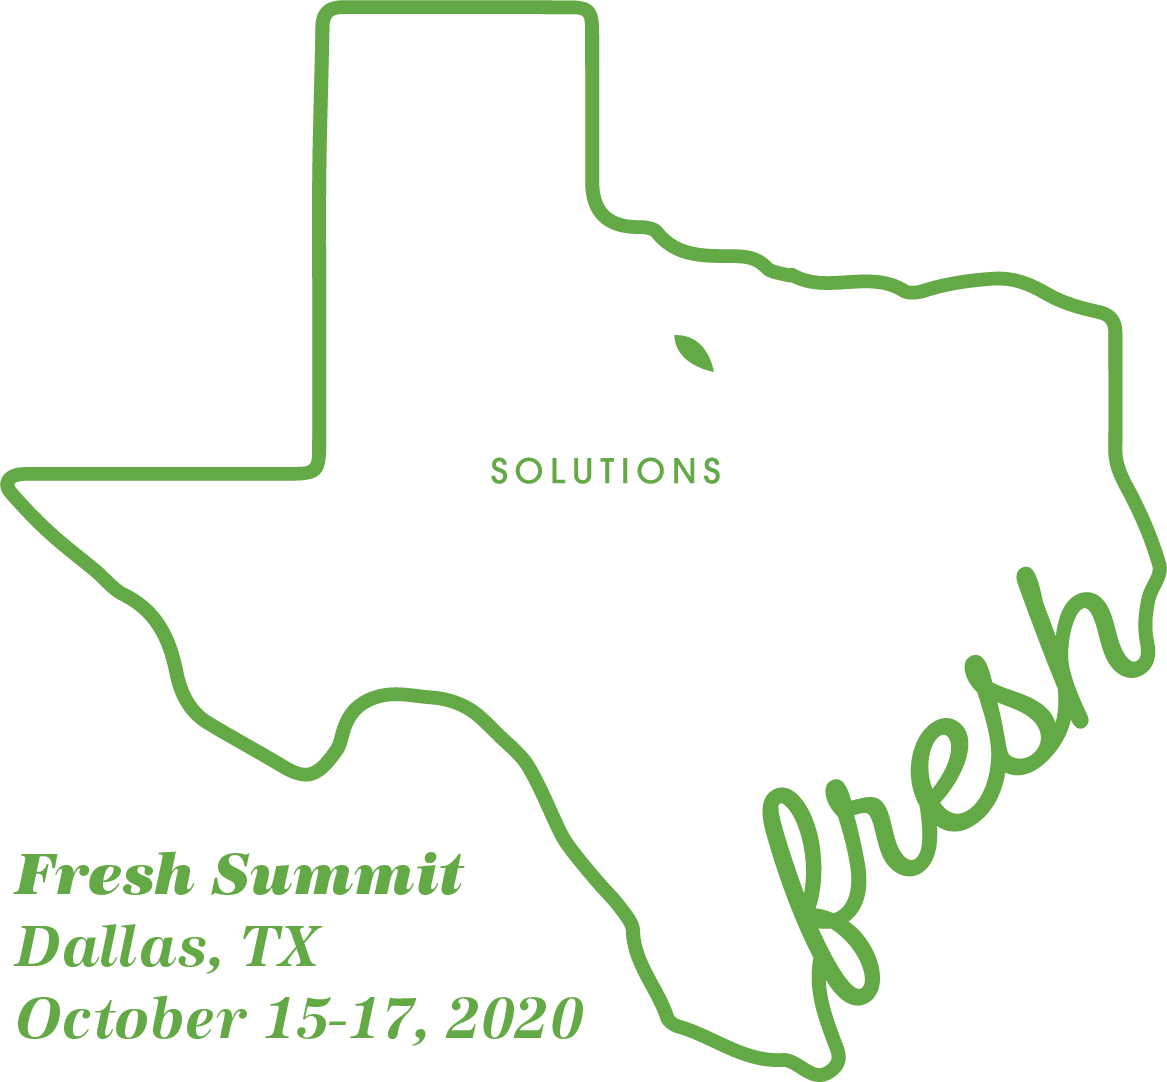 #Dallas2020 | DMA Solutions | Fresh Summit - Dallas